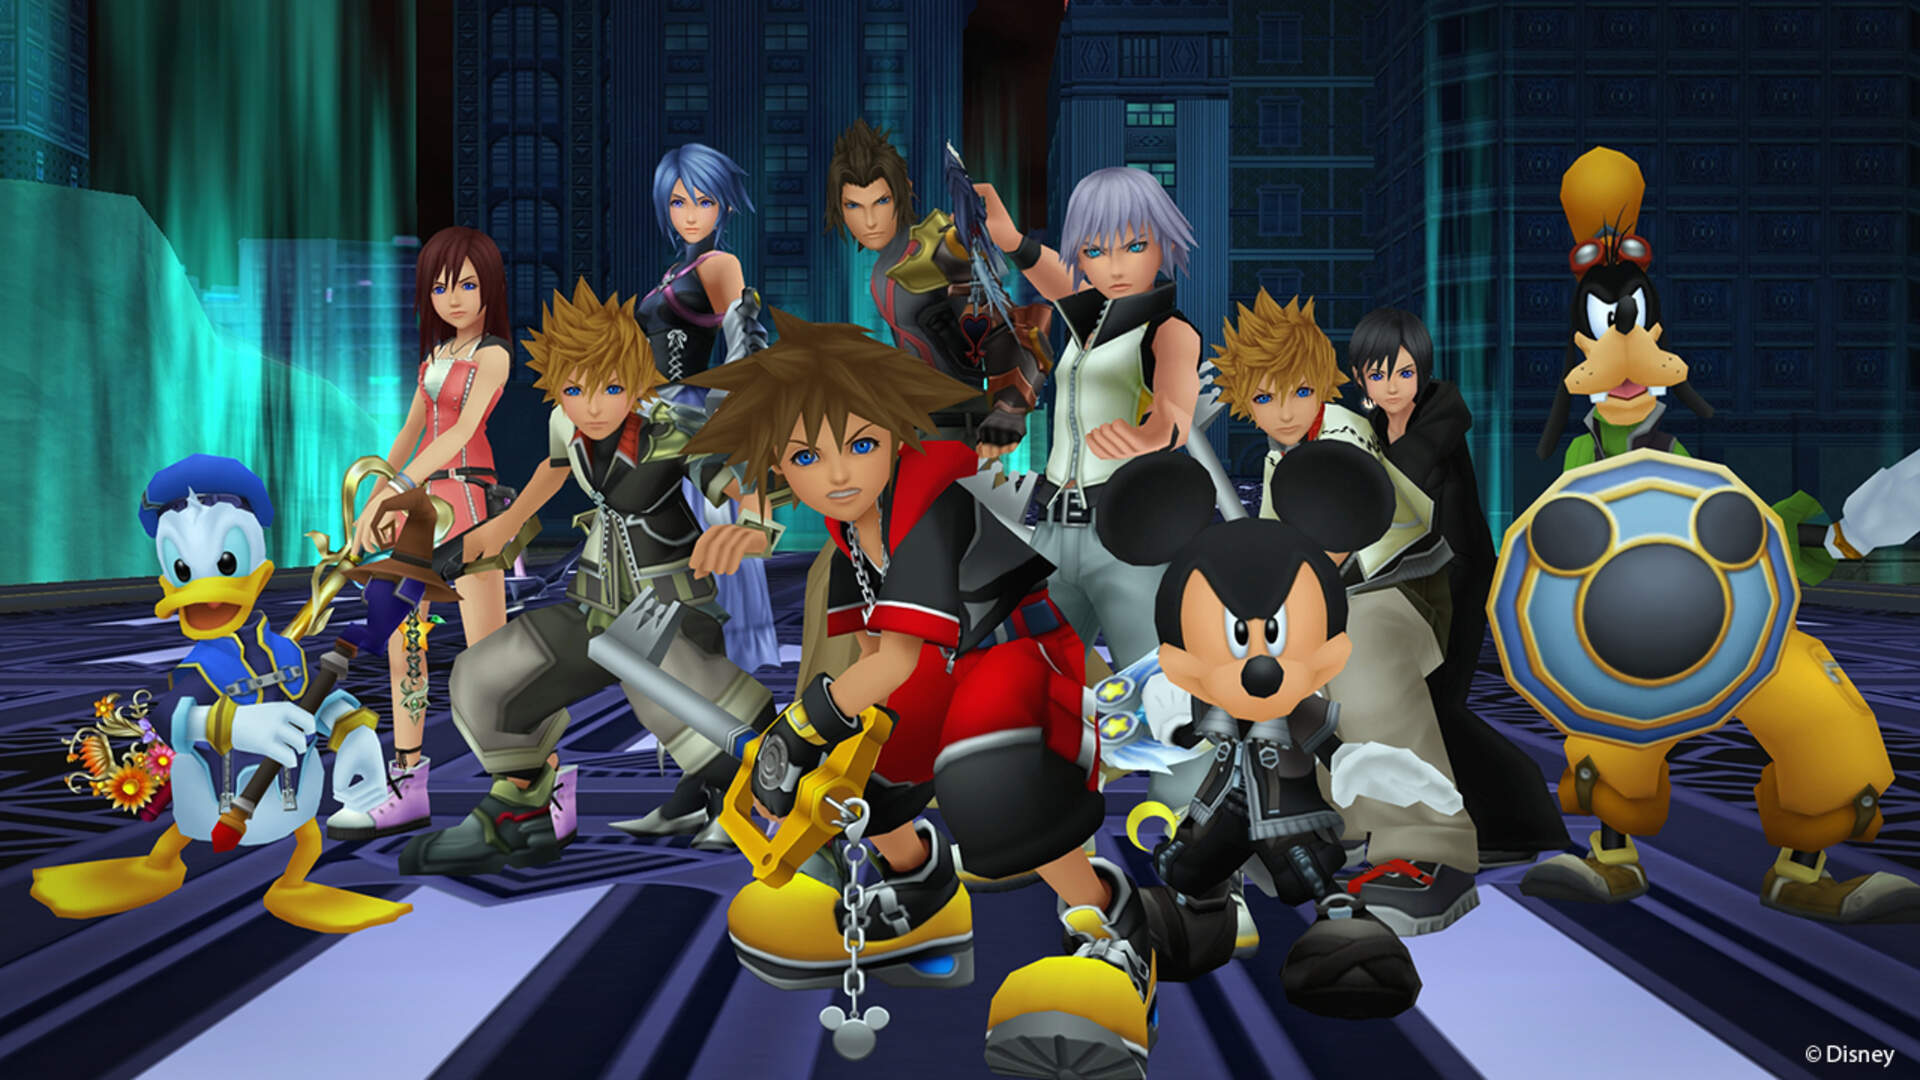 Tetsuya Nomura Talks About Kingdom Hearts 4 and More in New Interview